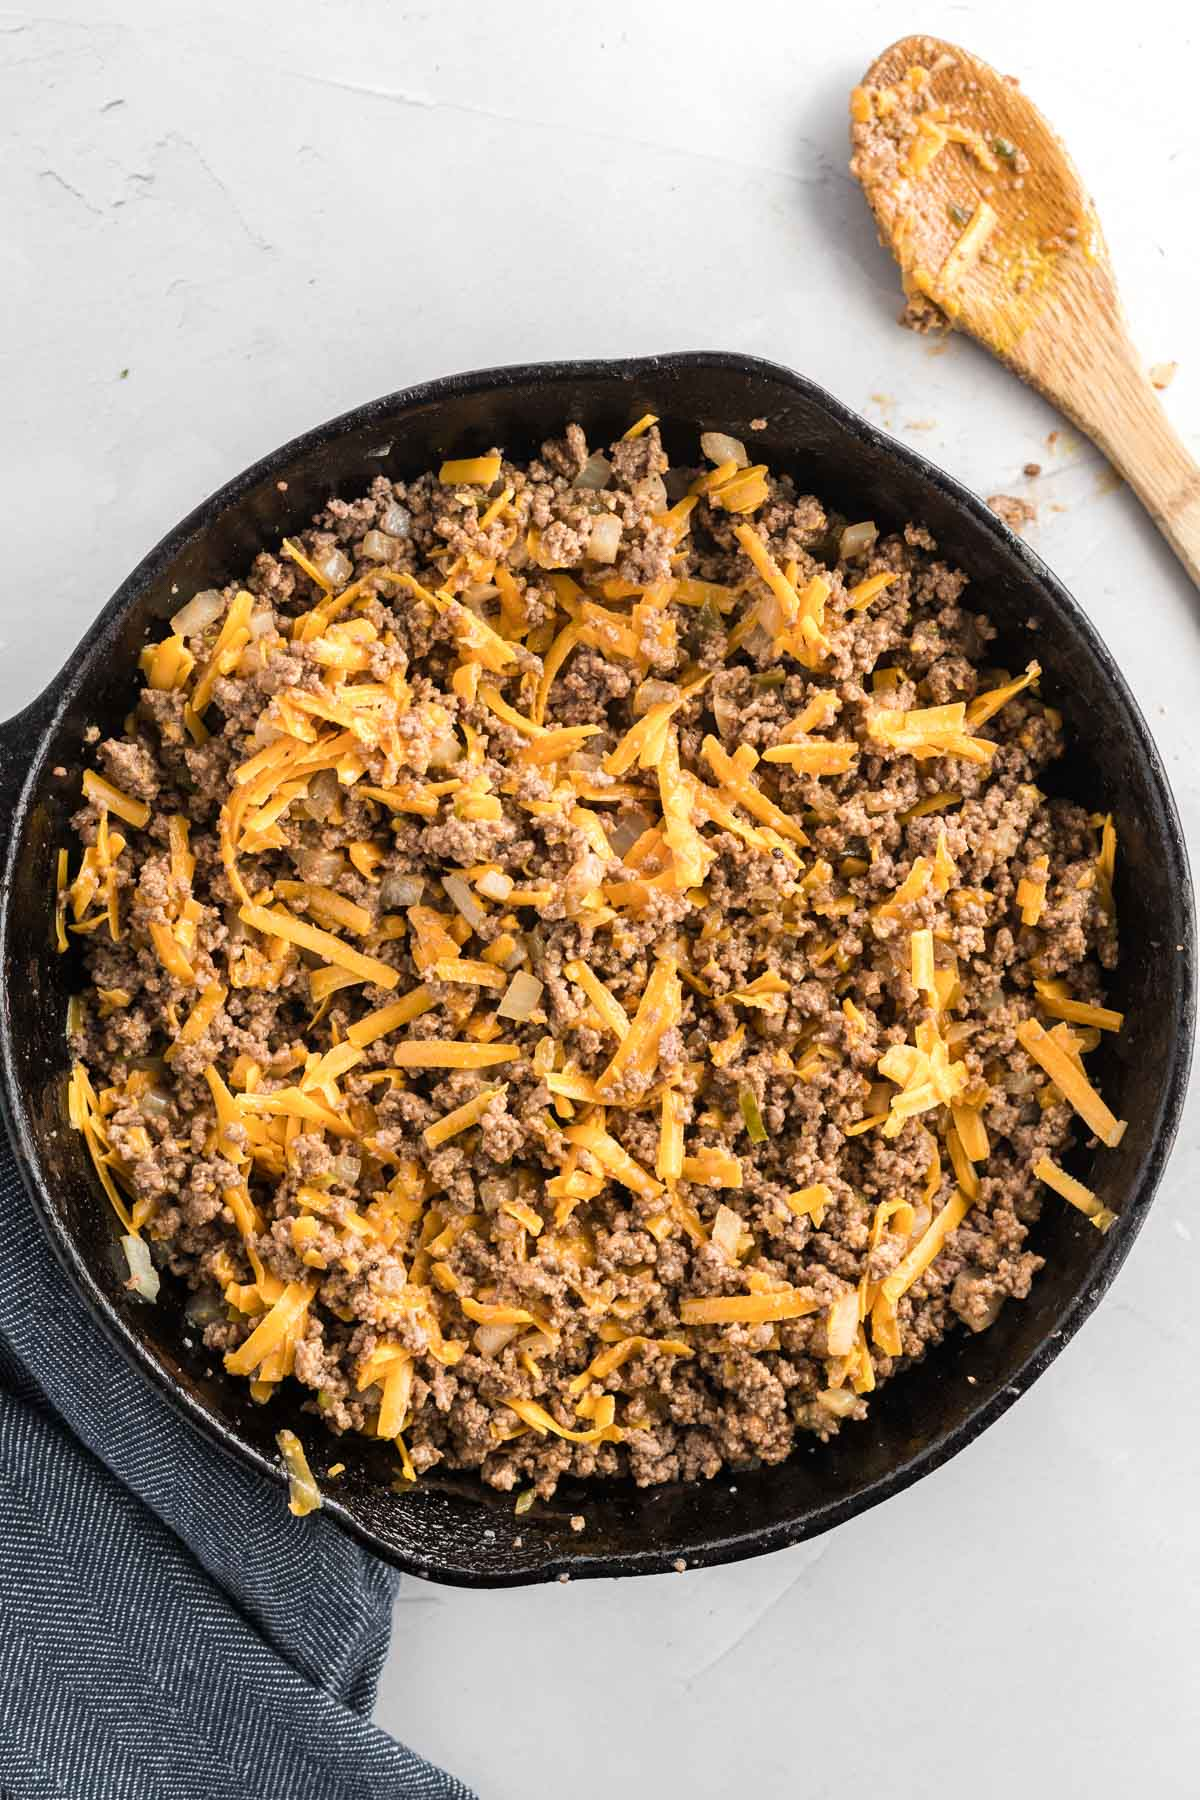 Cooked ground beef in a cast iron skillet with cheese.